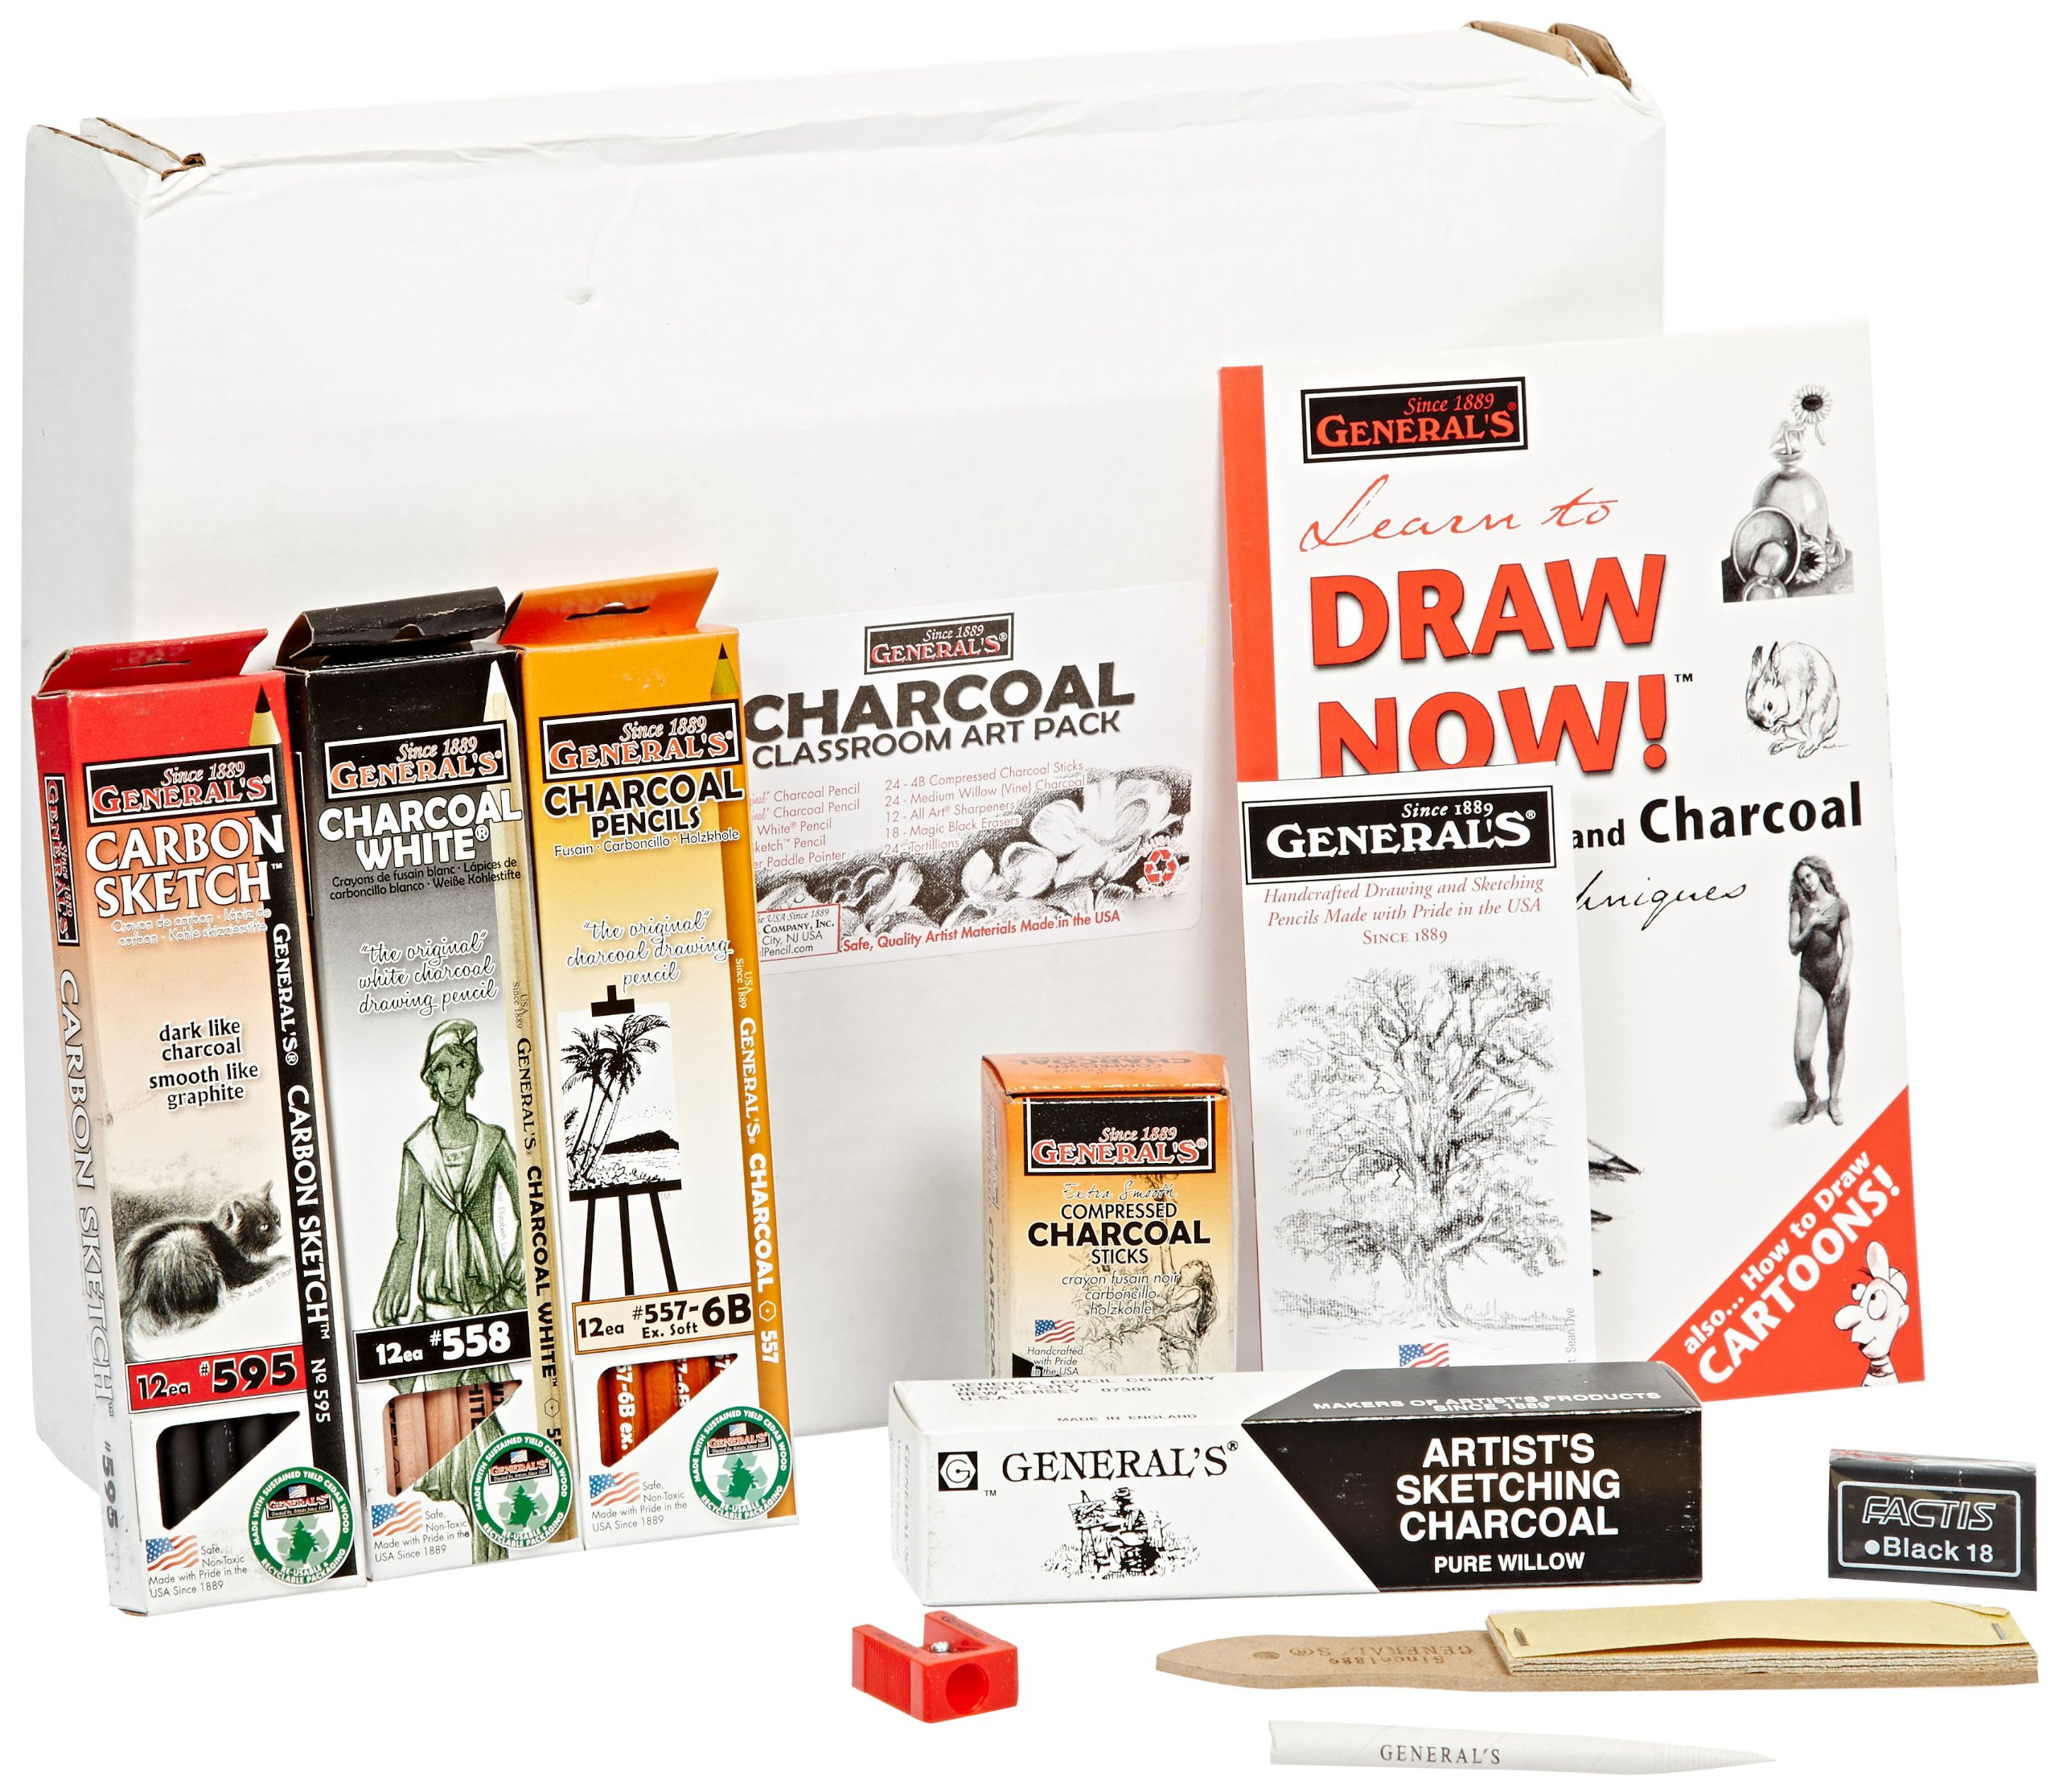 General's Charcoal Drawing School Pack